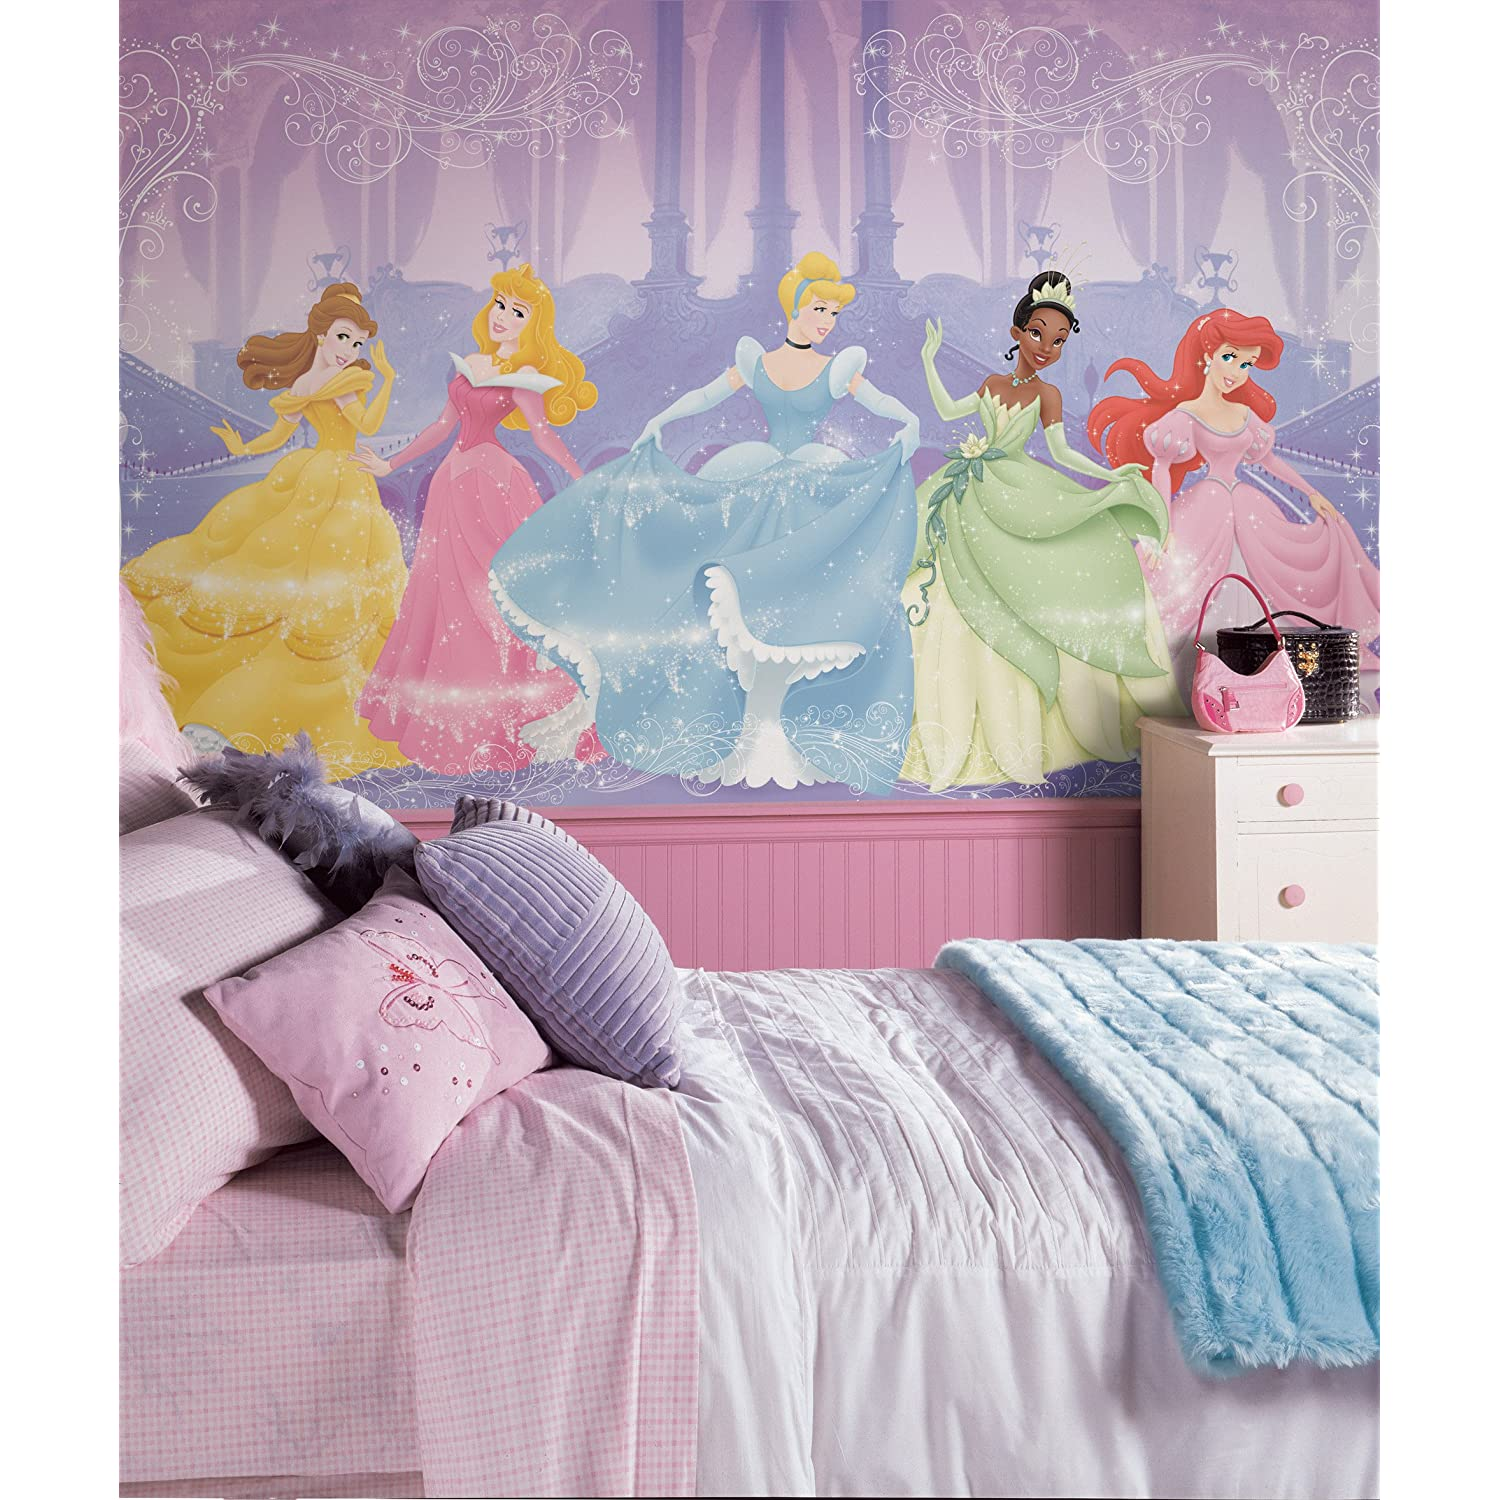 Disney princess wall decals for Disney princess wall mural stickers